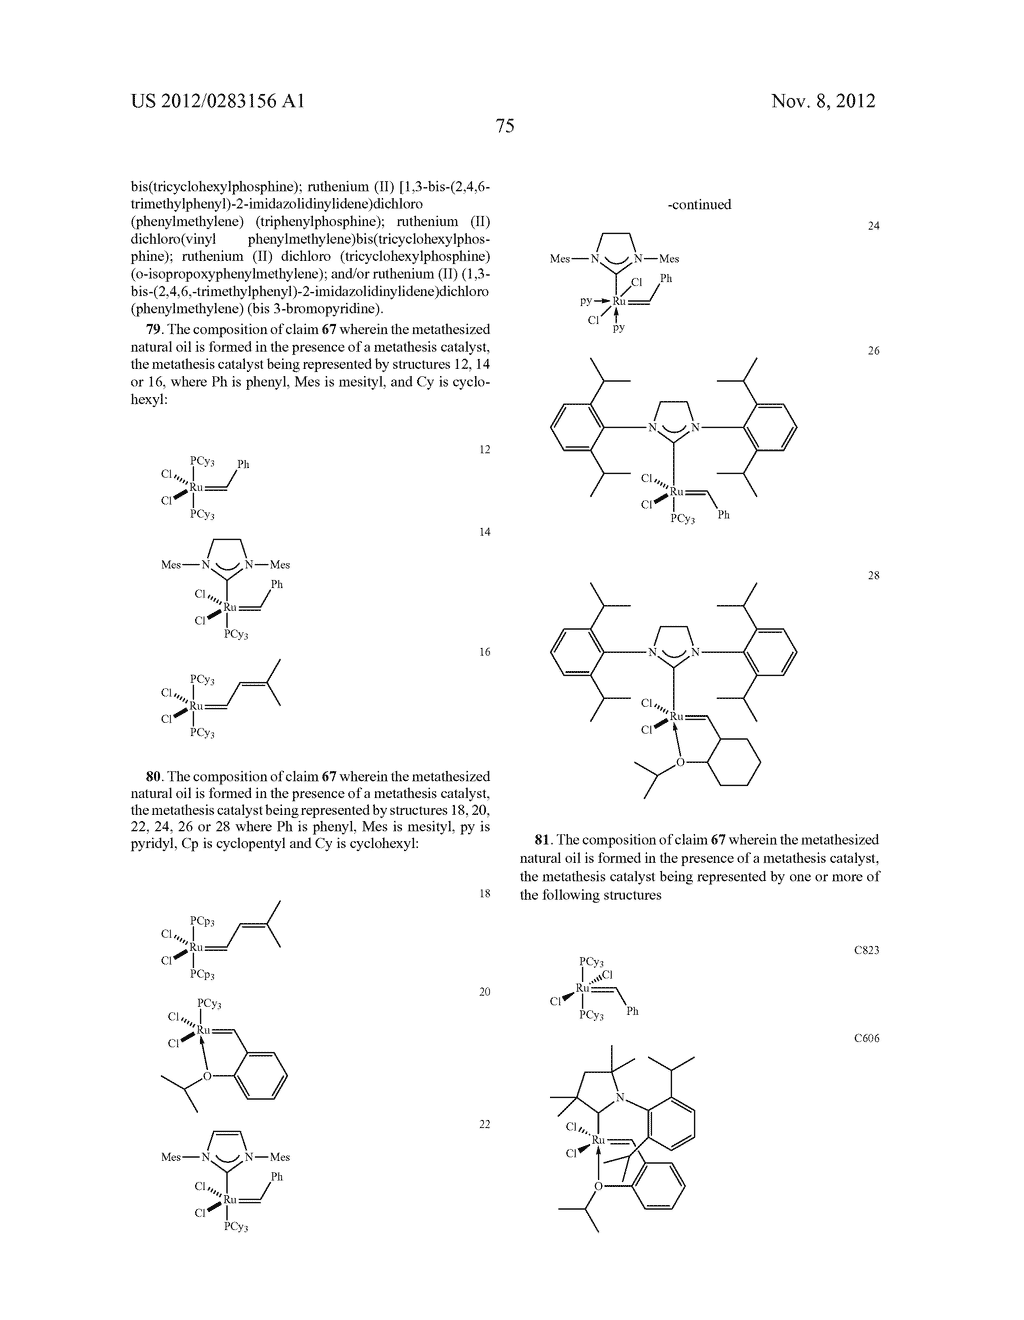 FUNCTIONALIZED MONOMERS - diagram, schematic, and image 78